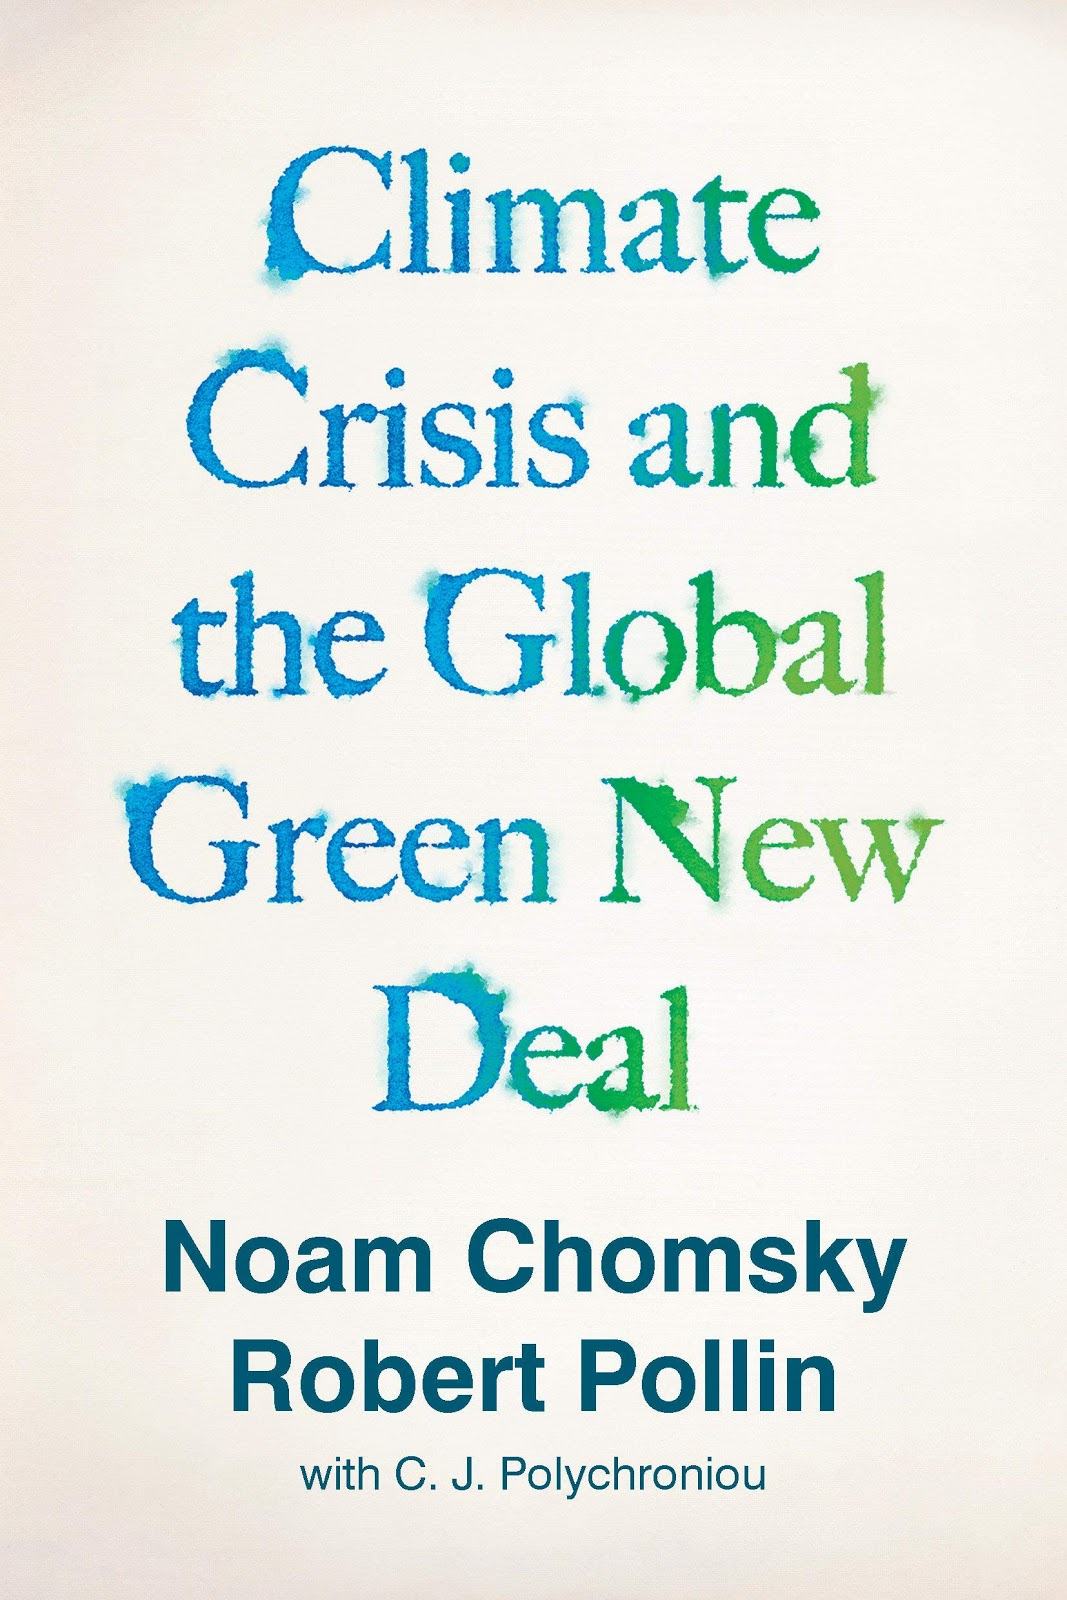 Climate Crisis and the Global Green New Deal: The Political Economy of  Saving the Planet: Chomsky, Noam, Pollin, Robert, Polychroniou, C.J.:  9781788739856: Amazon.com: Books